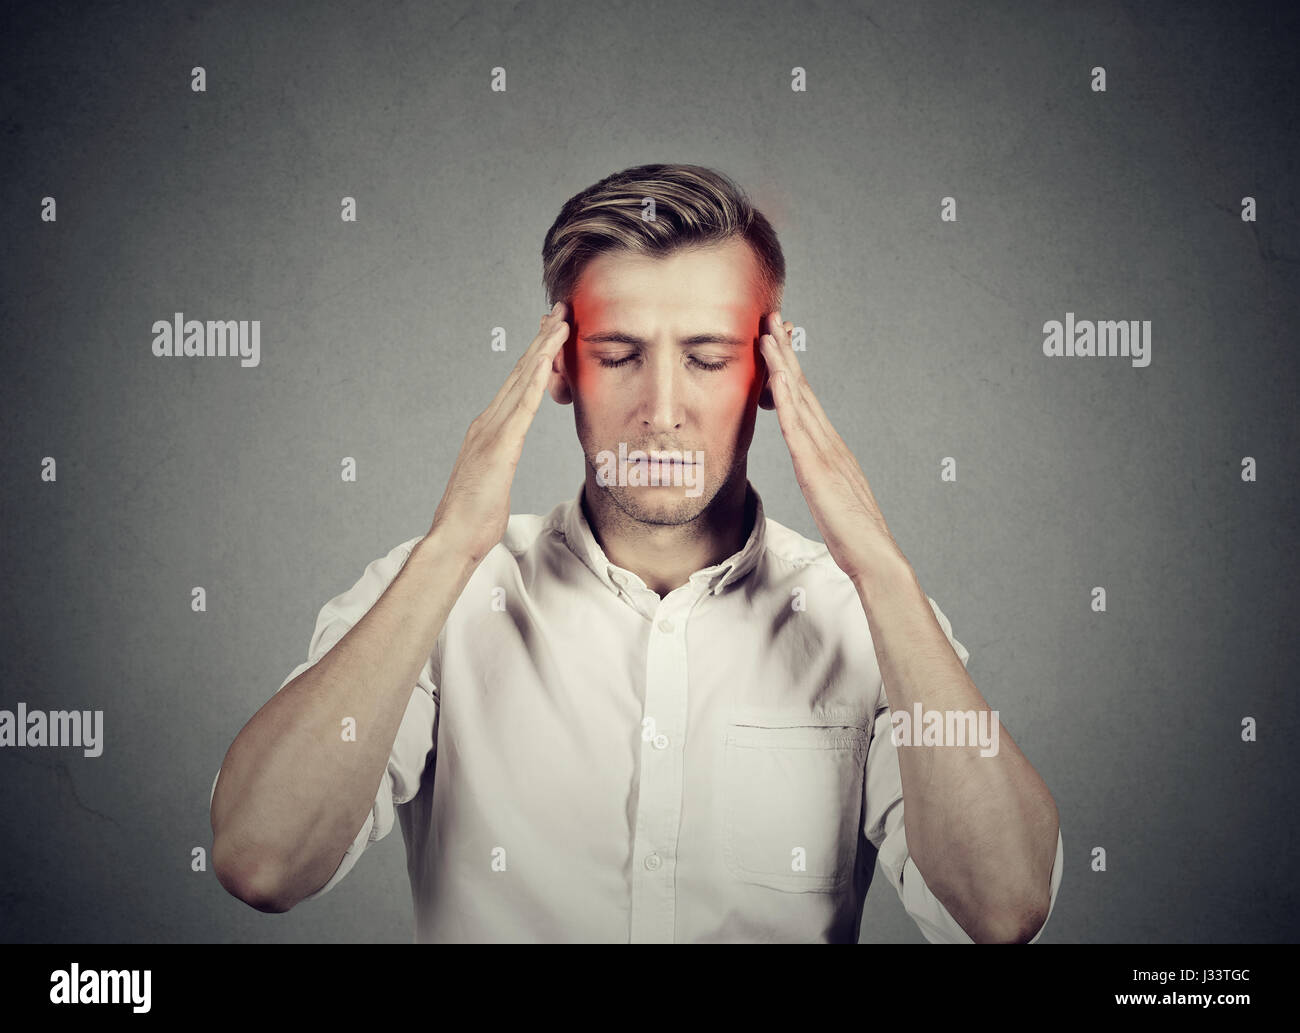 Man with headache thinking very intensely concentrating isolated on gray wall background - Stock Image